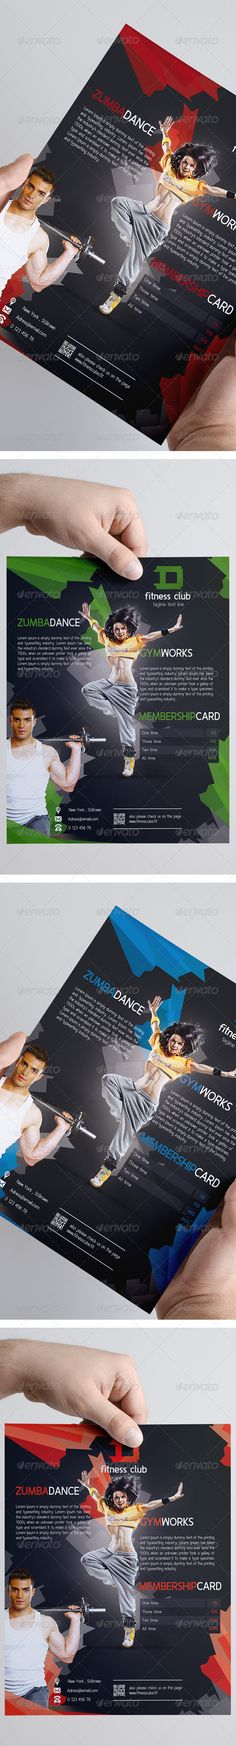 Fitness Gym Flyer by Andrzej Grzesiak, via Behance Fitness Flyer, Fitness Brand, Graphic Prints, Graphic Design, Flyer Printing, Workout Posters, Sports Flyer, Business Flyer Templates, Corporate Flyer